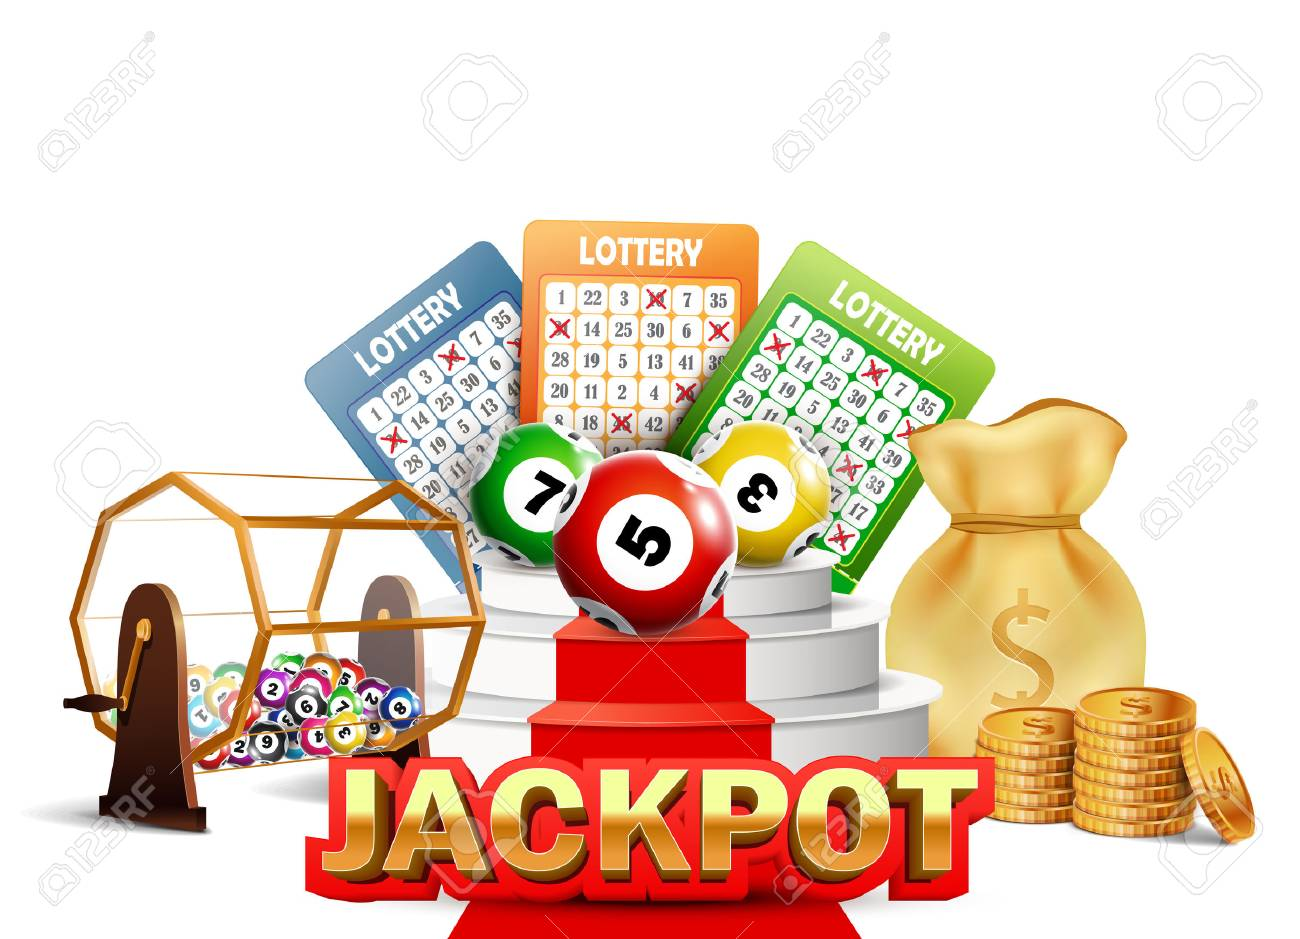 Lottery Jackpot With Tickets, Wheel, Coins And Balls